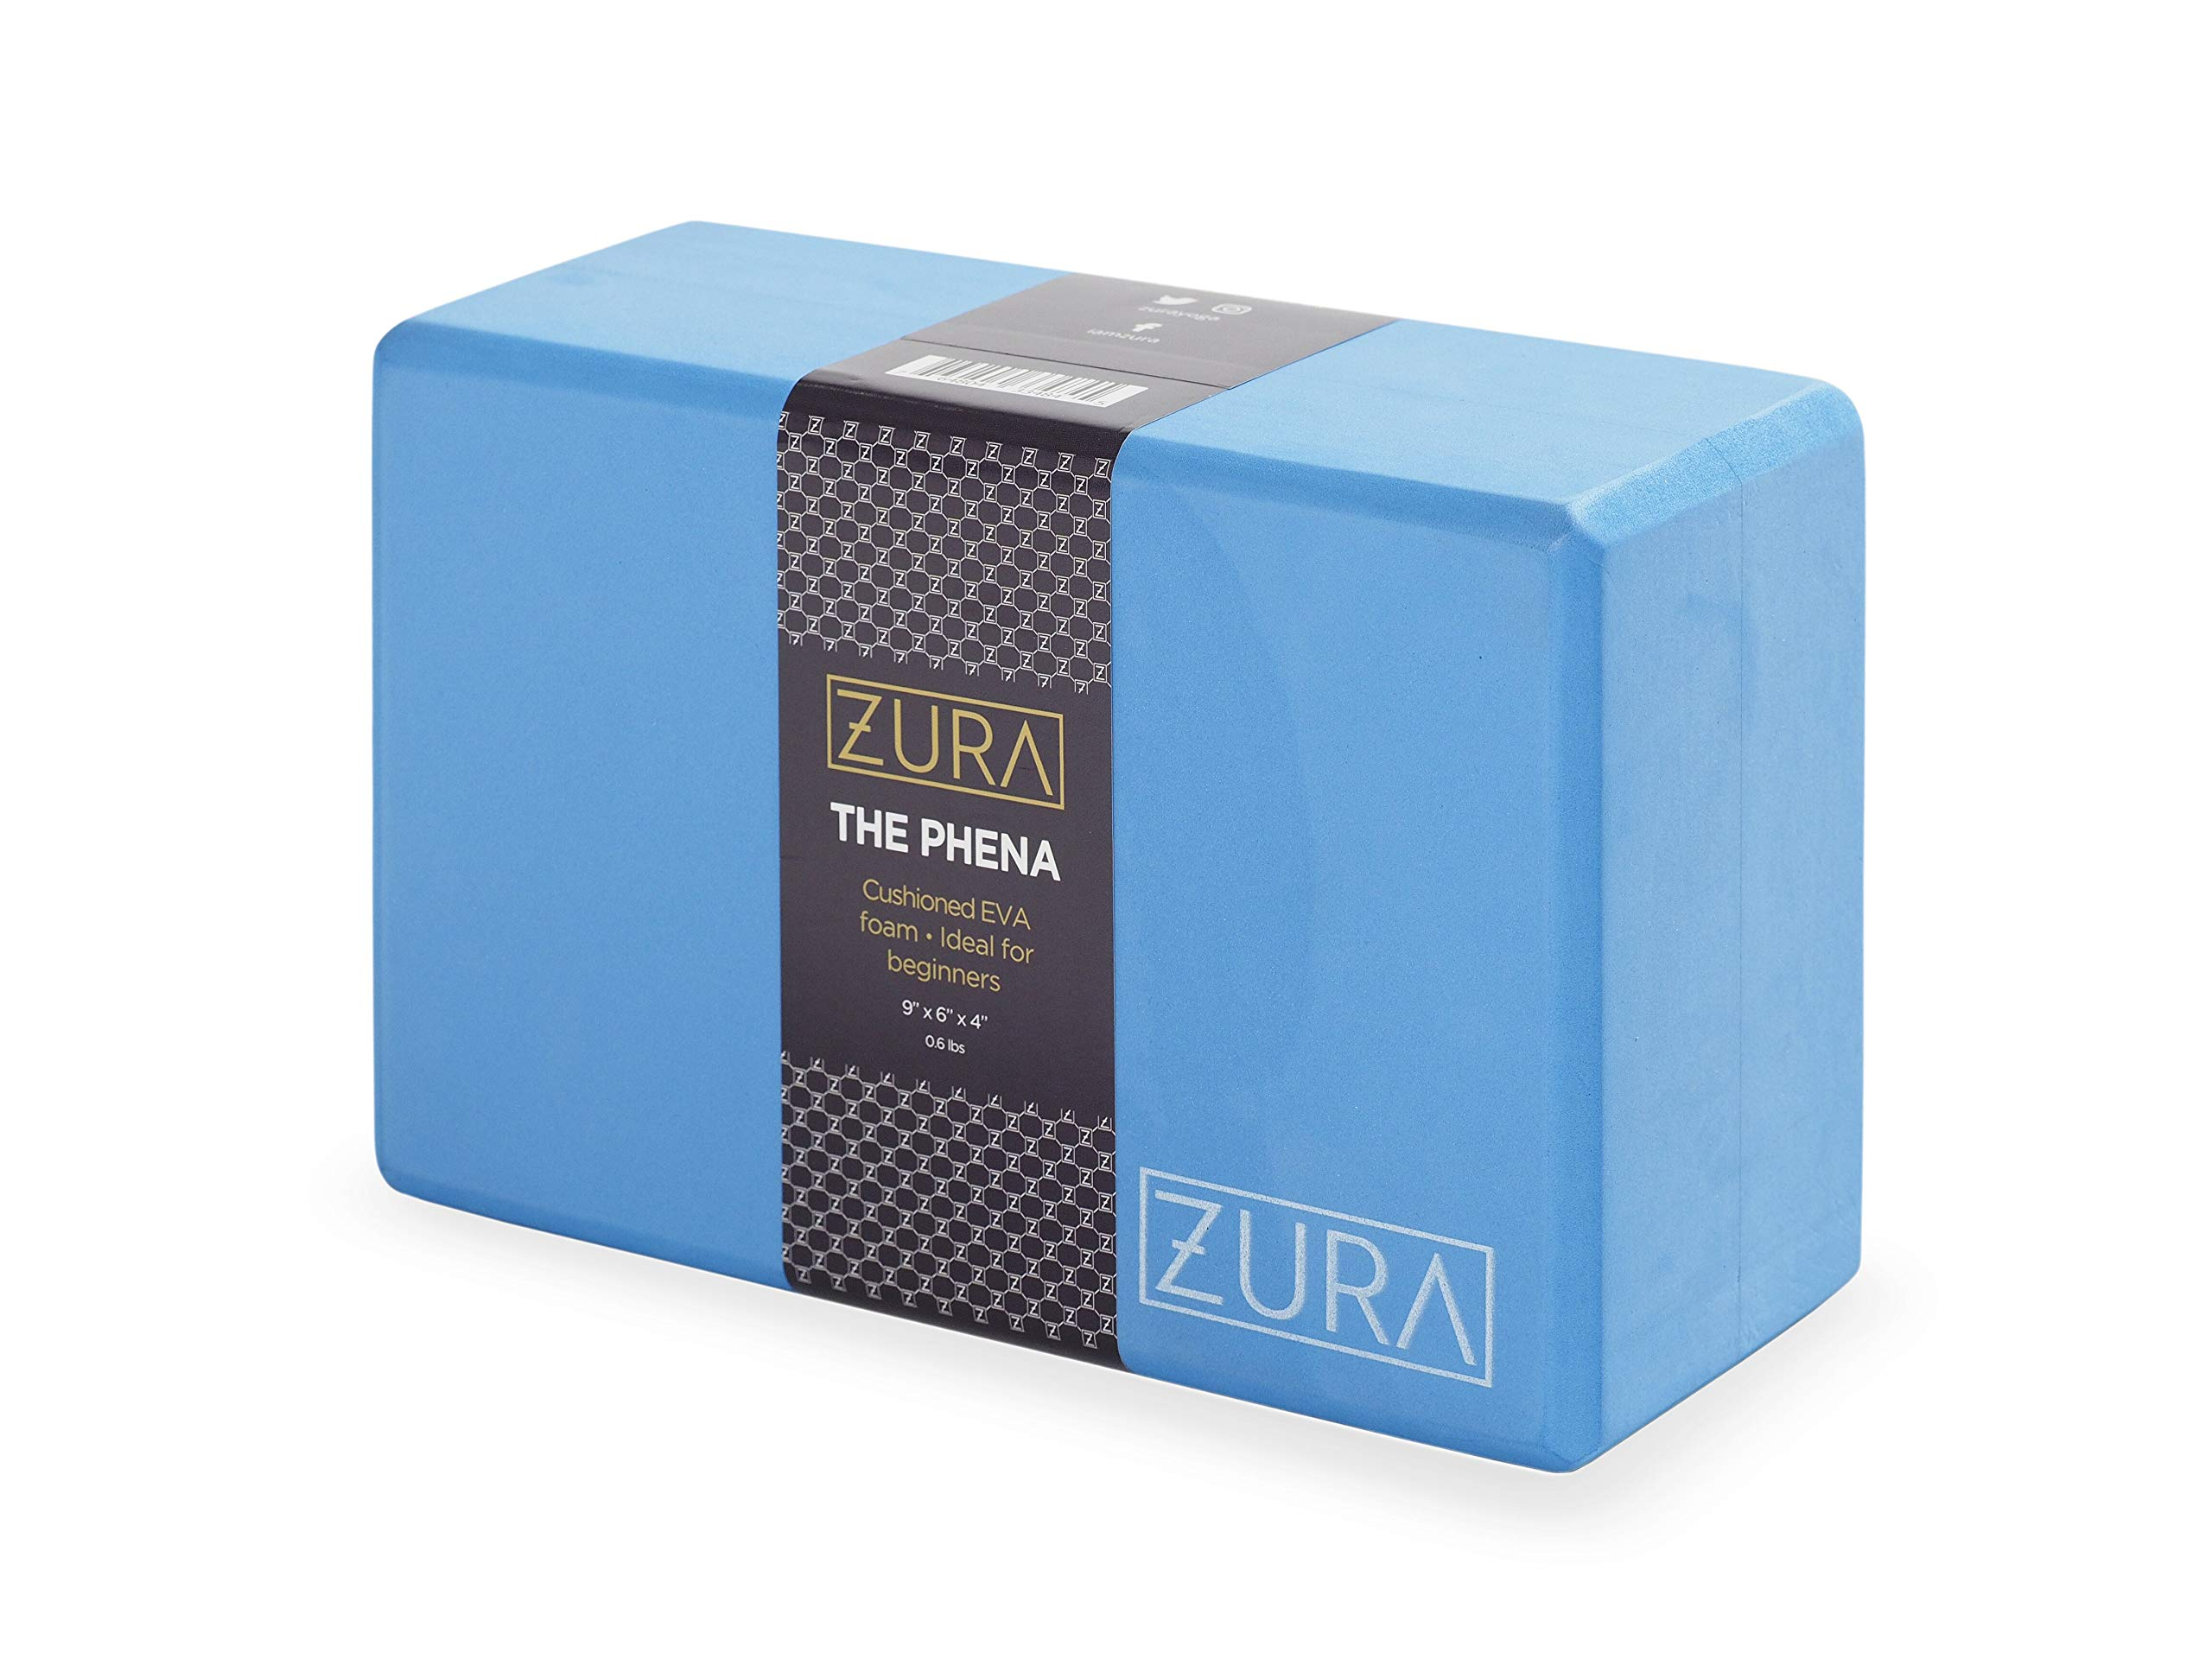 ZURA Premium Yoga Block by 100% EVA Foam - All Natural & Eco Friendly - Superior Stability & Balance - Free of Toxic Smells & Chemicals